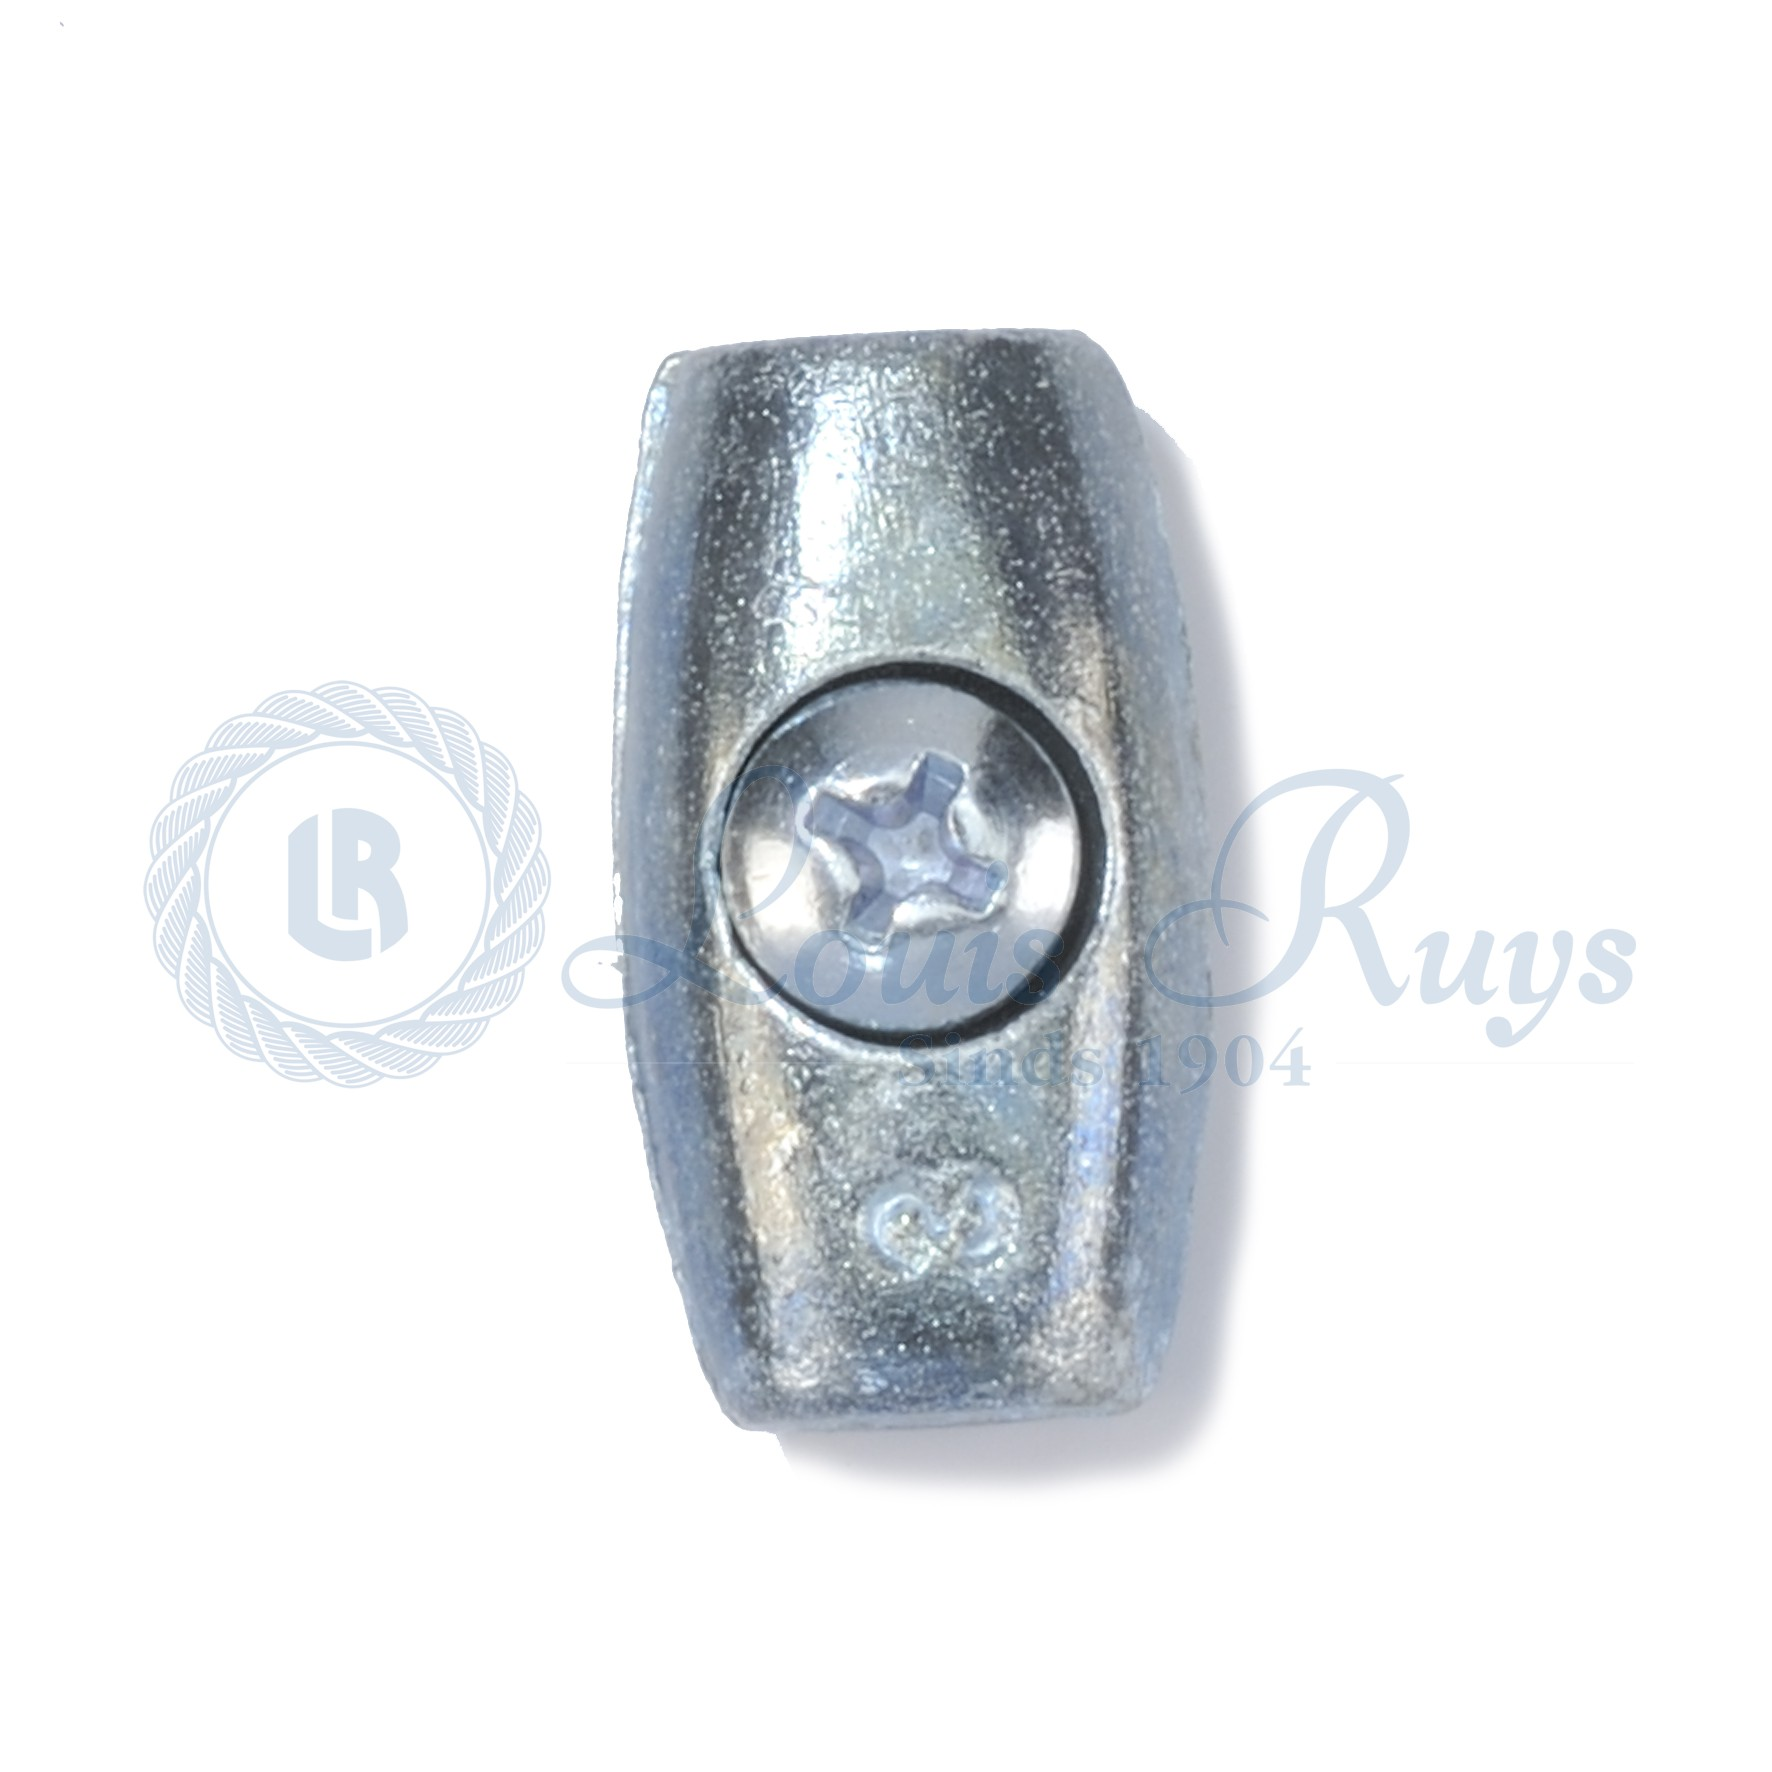 Oval wire rope clips - Louis Ruys